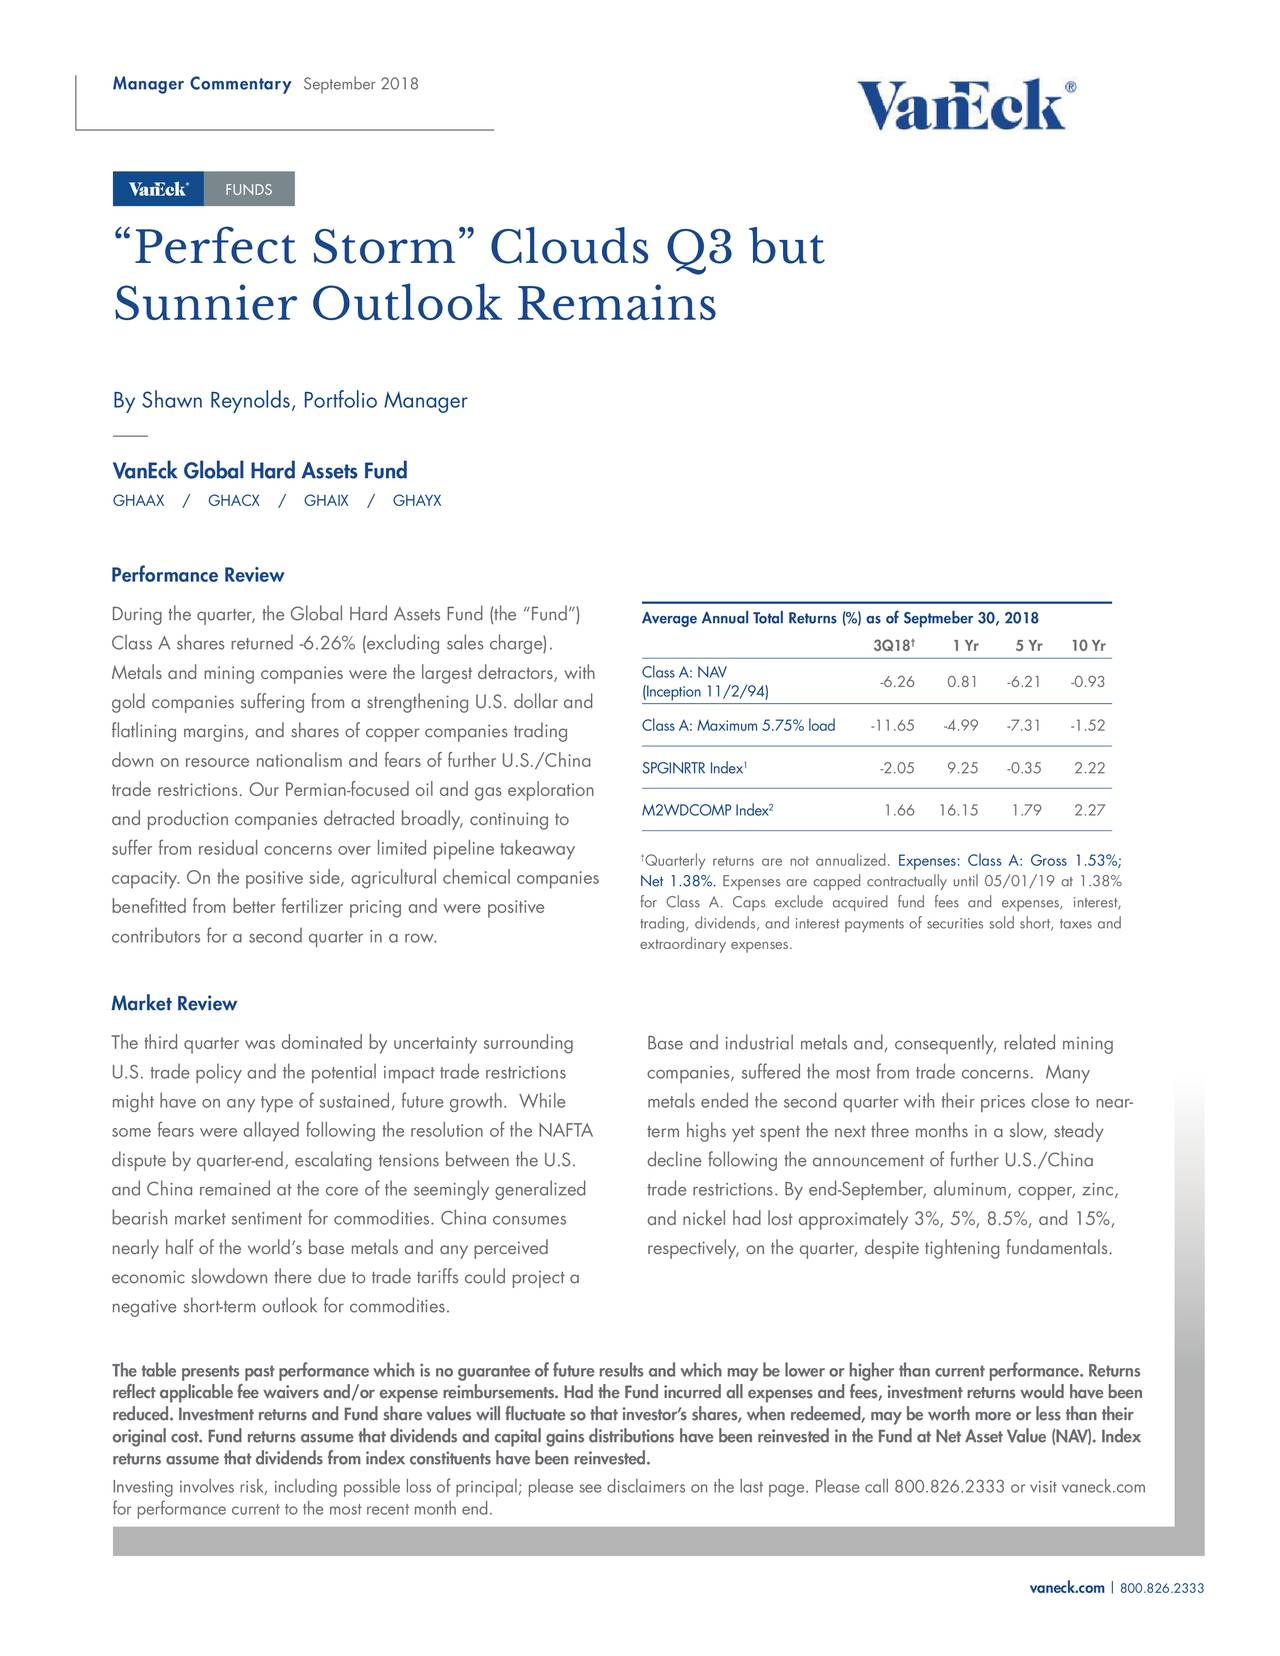 """""""Perfect Storm"""" Clouds Q3 but Sunnier Outlook Remains By Shawn Reynolds, Portfolio Manager VanEck Global Hard Assets Fund GHAAX / GHACX / GHAIX / GHAYX Performance Review During the quarter, the Global Hard Assets Fund (the """"Fund"""") Average Annual Total Returns (%) as of Septmeber 30, 2018 Class A shares returned -6.26% (excluding sales charge). 3Q18 † 1 Yr 5 Yr 10 Yr Metals and mining companies were the largest detractors, with Class A: NAV (Inception 11/2/94) -6.26 0.81 -6.21 -0.93 gold companies suffering from a strengthening U.S. dollar and Class A: Maximum 5.75% load -11.65 -4.99 -7.31 -1.52 flatlining margins, and shares of copper companies trading down on resource nationalism and fears of further U.S./China SPGINRTR Index -2.05 9.25 -0.35 2.22 trade restrictions. Our Permian-focused oil and gas exploration 2 and production companies detracted broadly, continuing to M2WDCOMP Index 1.66 16.15 1.79 2.27 suffer from residual concerns over limited pipeline takeaway †Quarterly returns are not annualiExpenses: Class A: Gross 1.53%; capacity. On the positive side, agricultural chemical companies Net 1.38%. Expenses are capped contractually until 05/01/19 at 1.38% for Class A. Caps exclude acquired fund fees and expenses, interest, benefitted from better fertilizer pricing and were positive trading, dividends, and interest payments of securities sold short, taxes and contributors for a second quarter in a row. extraordinary expenses. Market Review The third quarter was dominated by uncertainty surrounding Base and industrial metals and, consequently, related mining U.S. trade policy and the potential impact trade restrictions companies, suffered the most from trade concerns. Many might have on any type of sustained, future growth. While metals ended the second quarter with their prices close to near- some fears were allayed following the resolution of the NAFTA term highs yet spent the next three months in a slow, steady dispute by quarter-end, escalating tensions betw"""